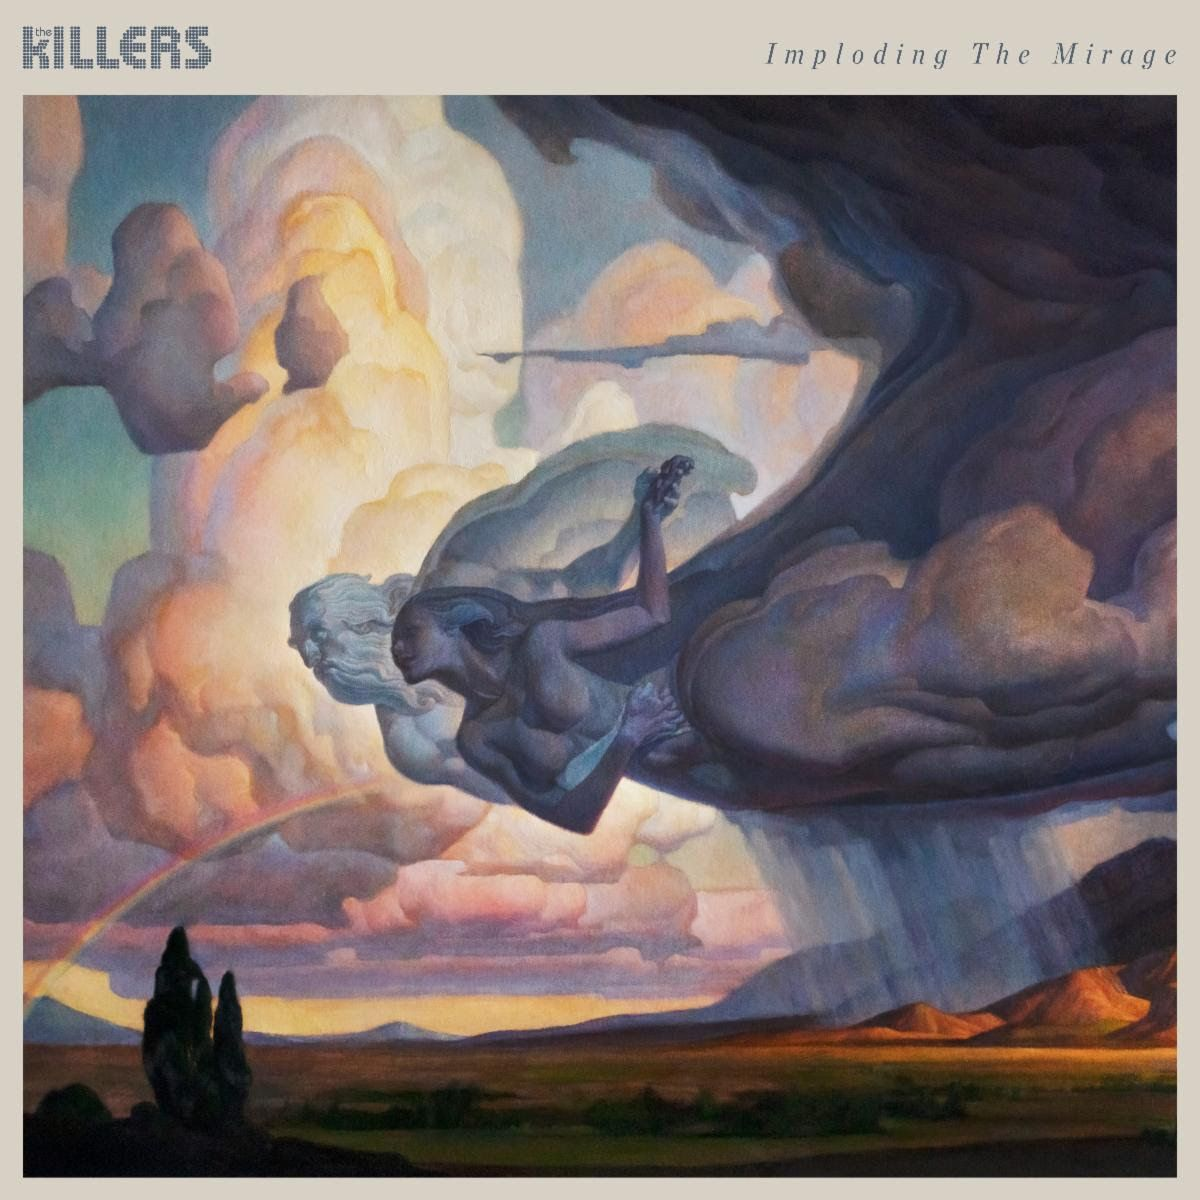 The Killers - Imploding Mirage